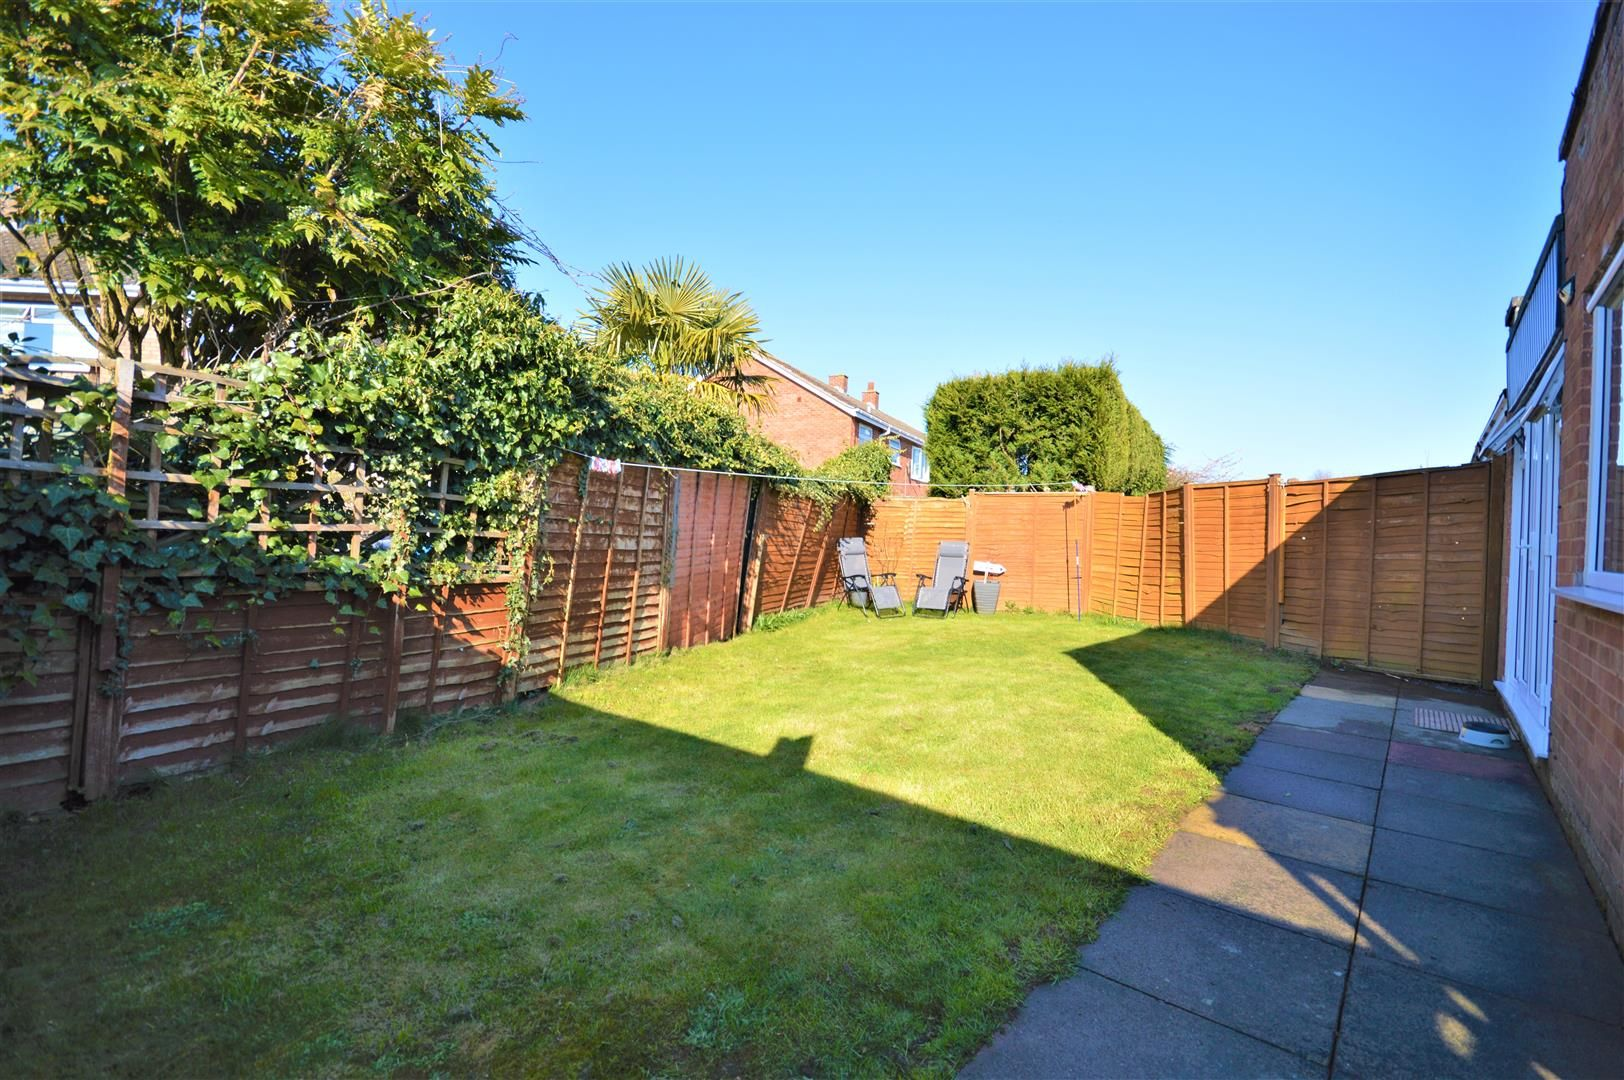 2 bed semi-detached-bungalow for sale in Marden  - Property Image 7